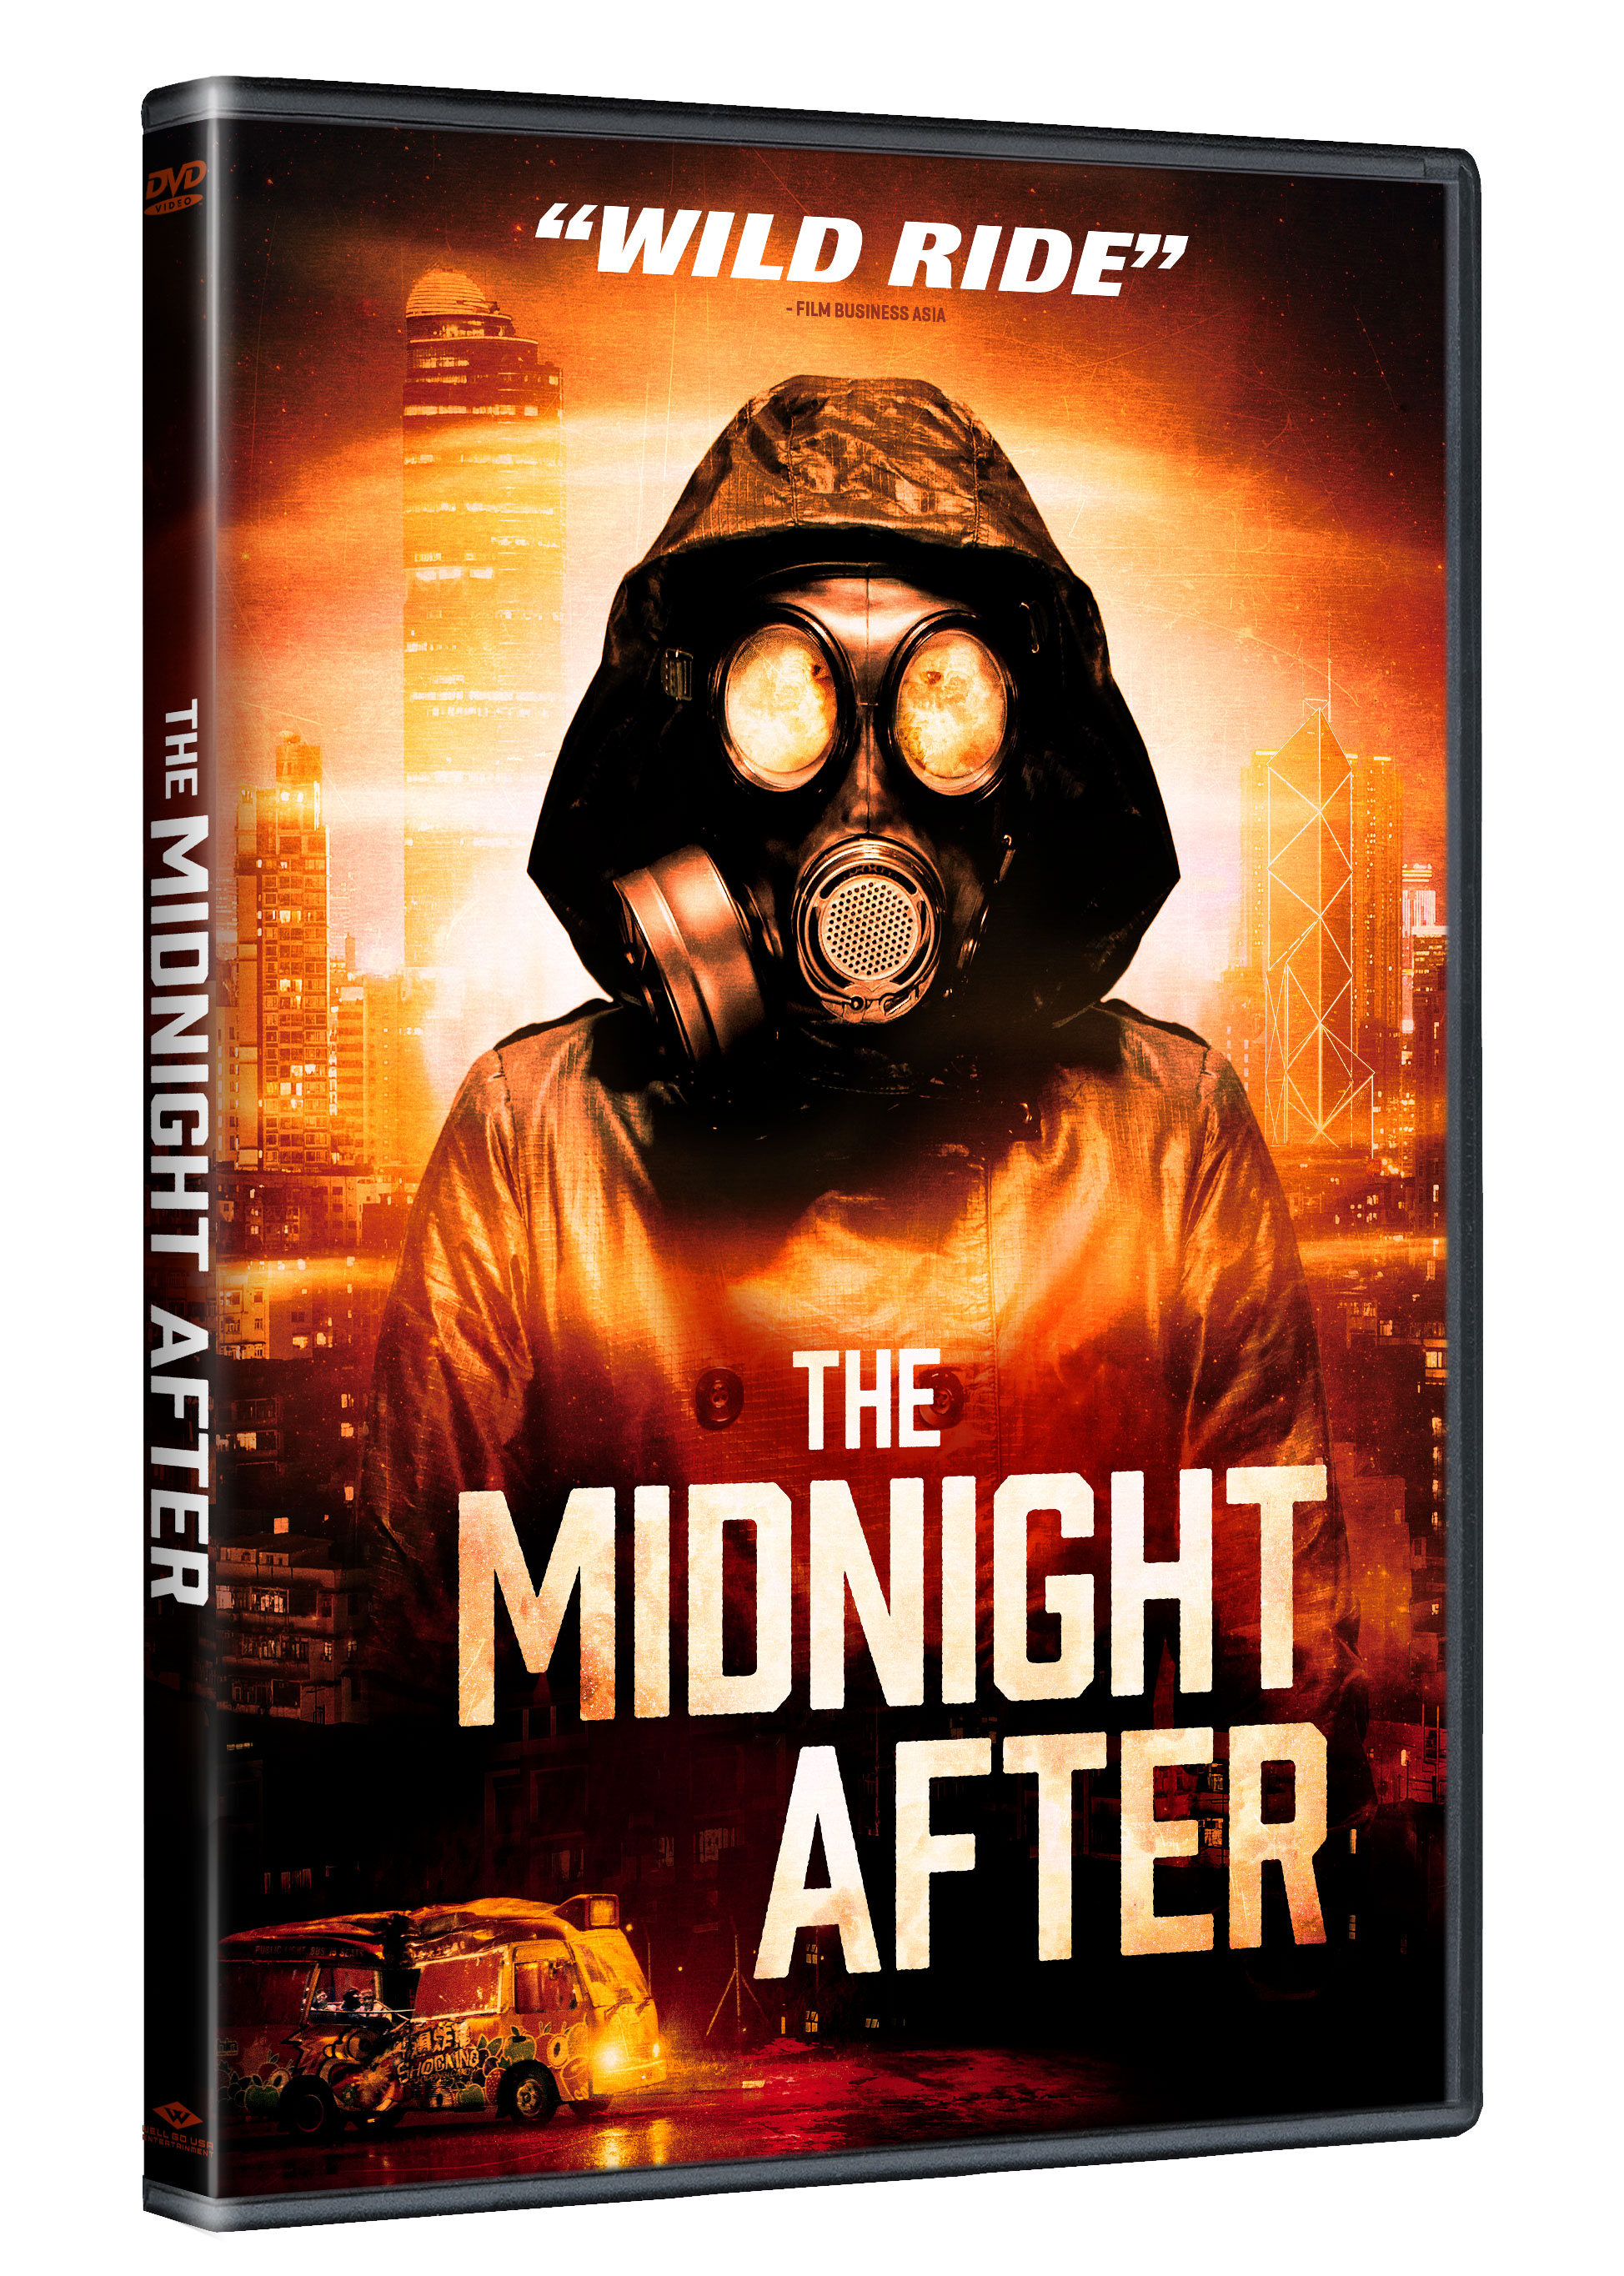 The Midnight After DVD Review